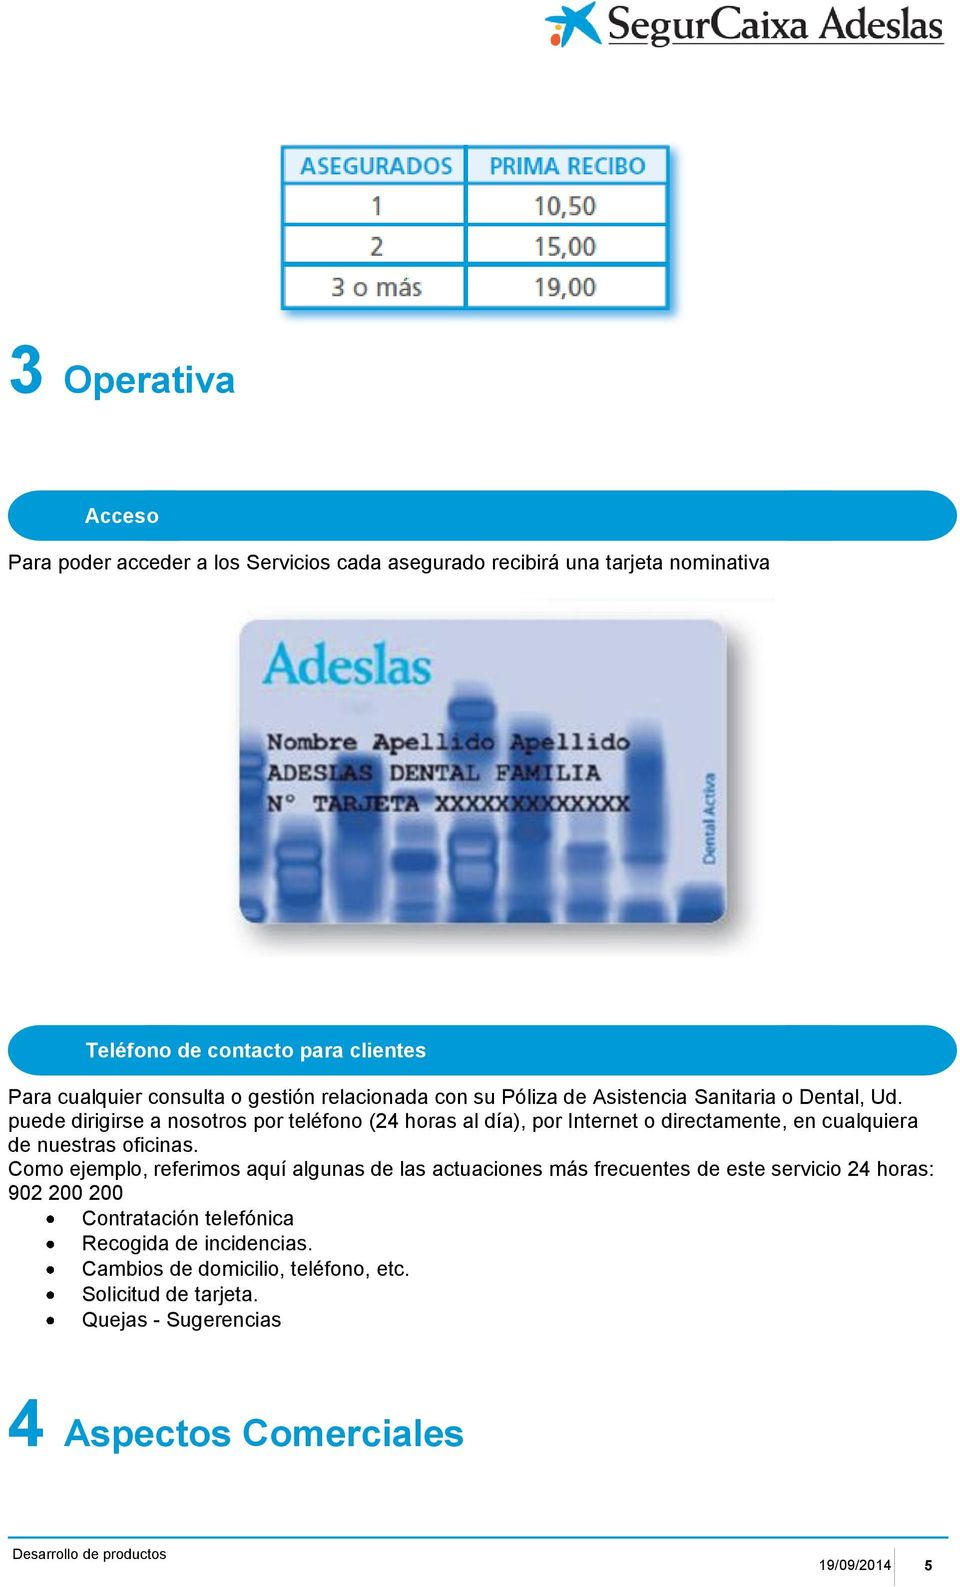 Adeslas Dental Madrid Telefono Gratuito